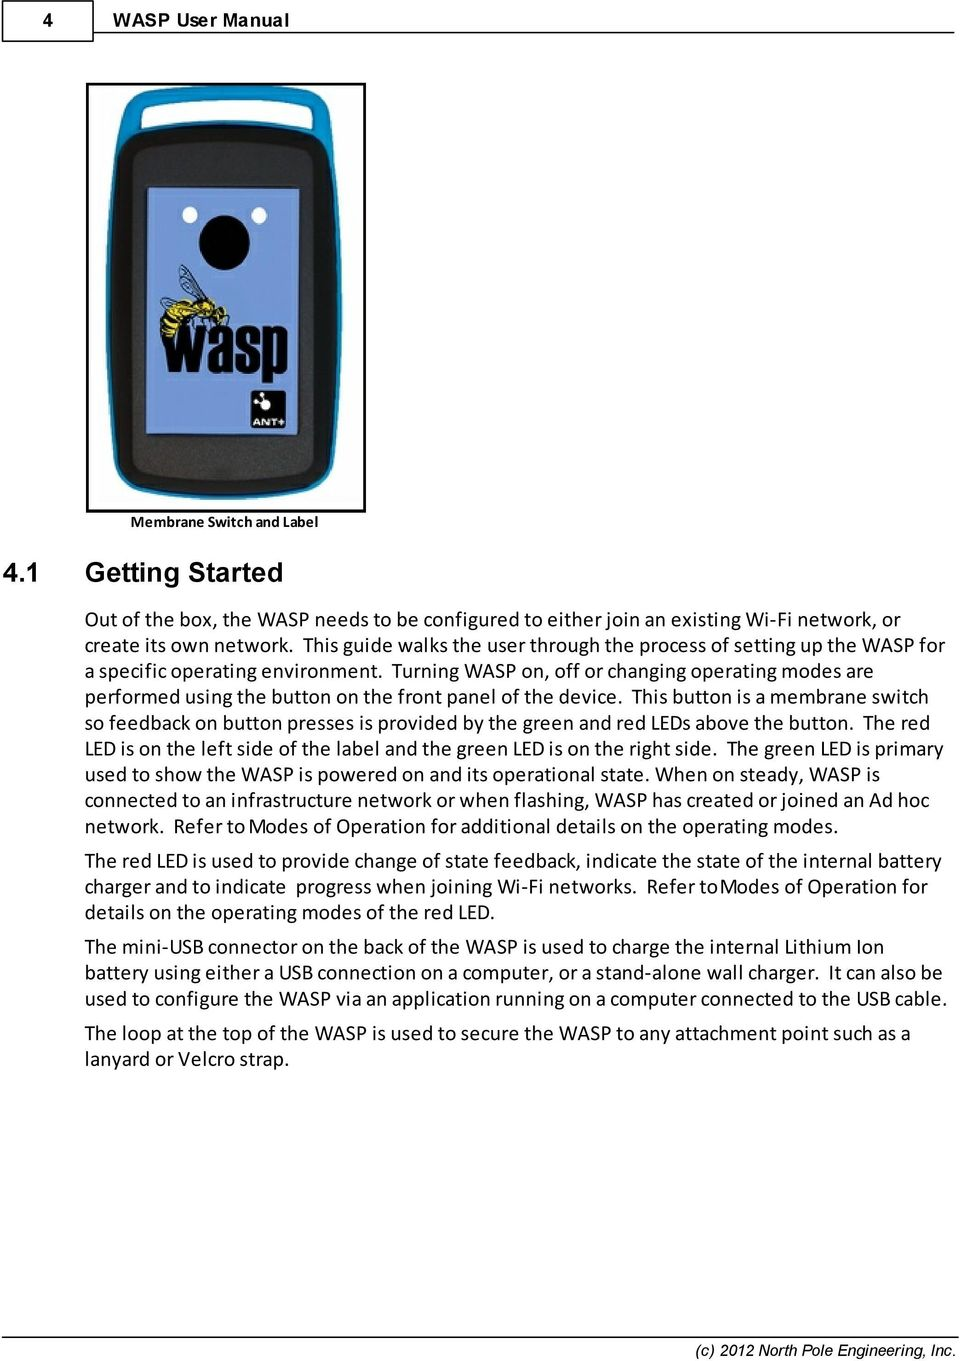 Turning WASP on, off or changing operating modes are performed using the button on the front panel of the device.